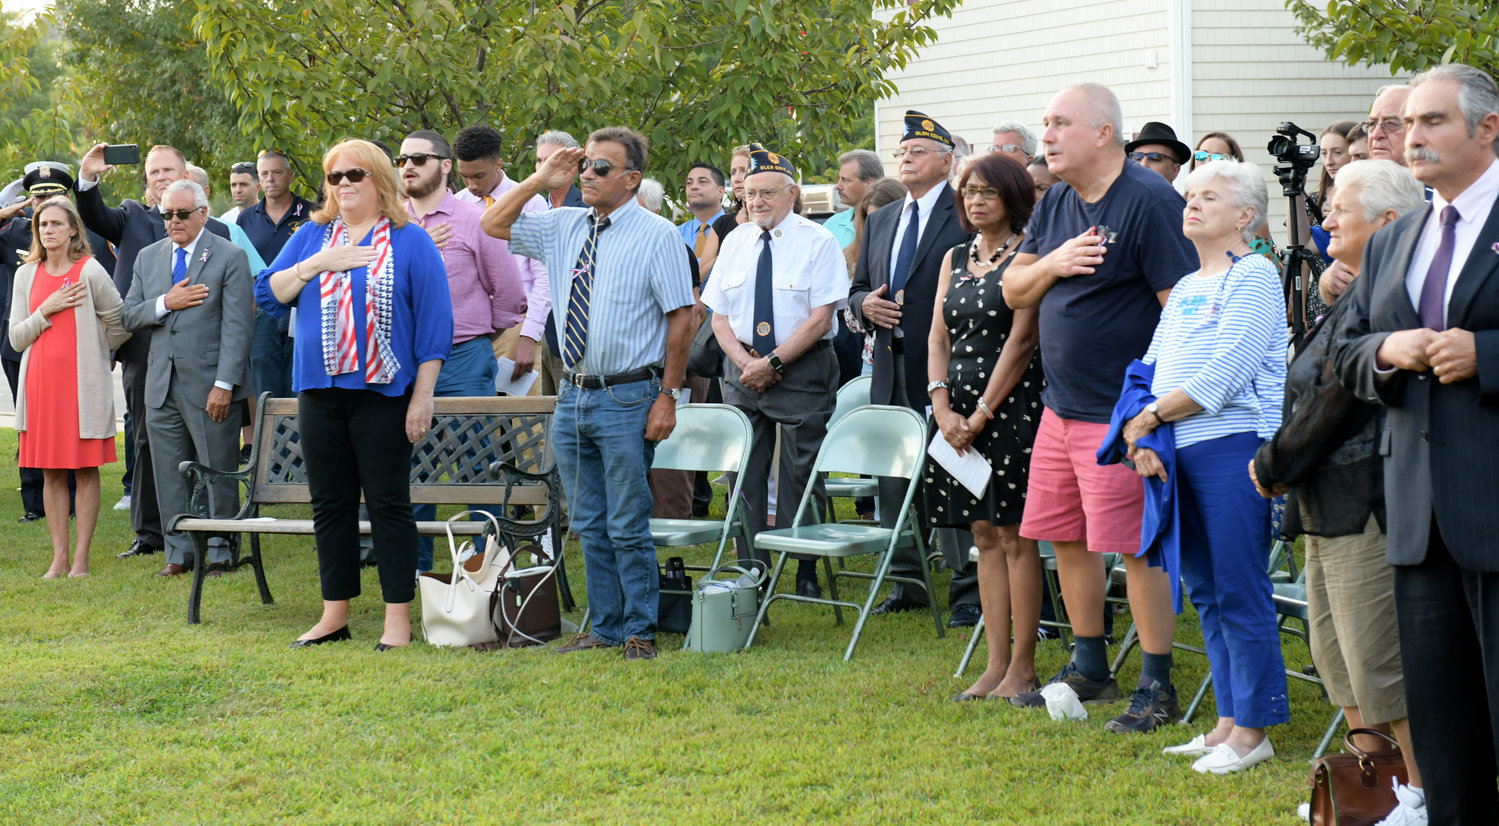 Glen Cove residents gathered at Pratt Park to honor the victims of the Sept. 11 terrorist attack.